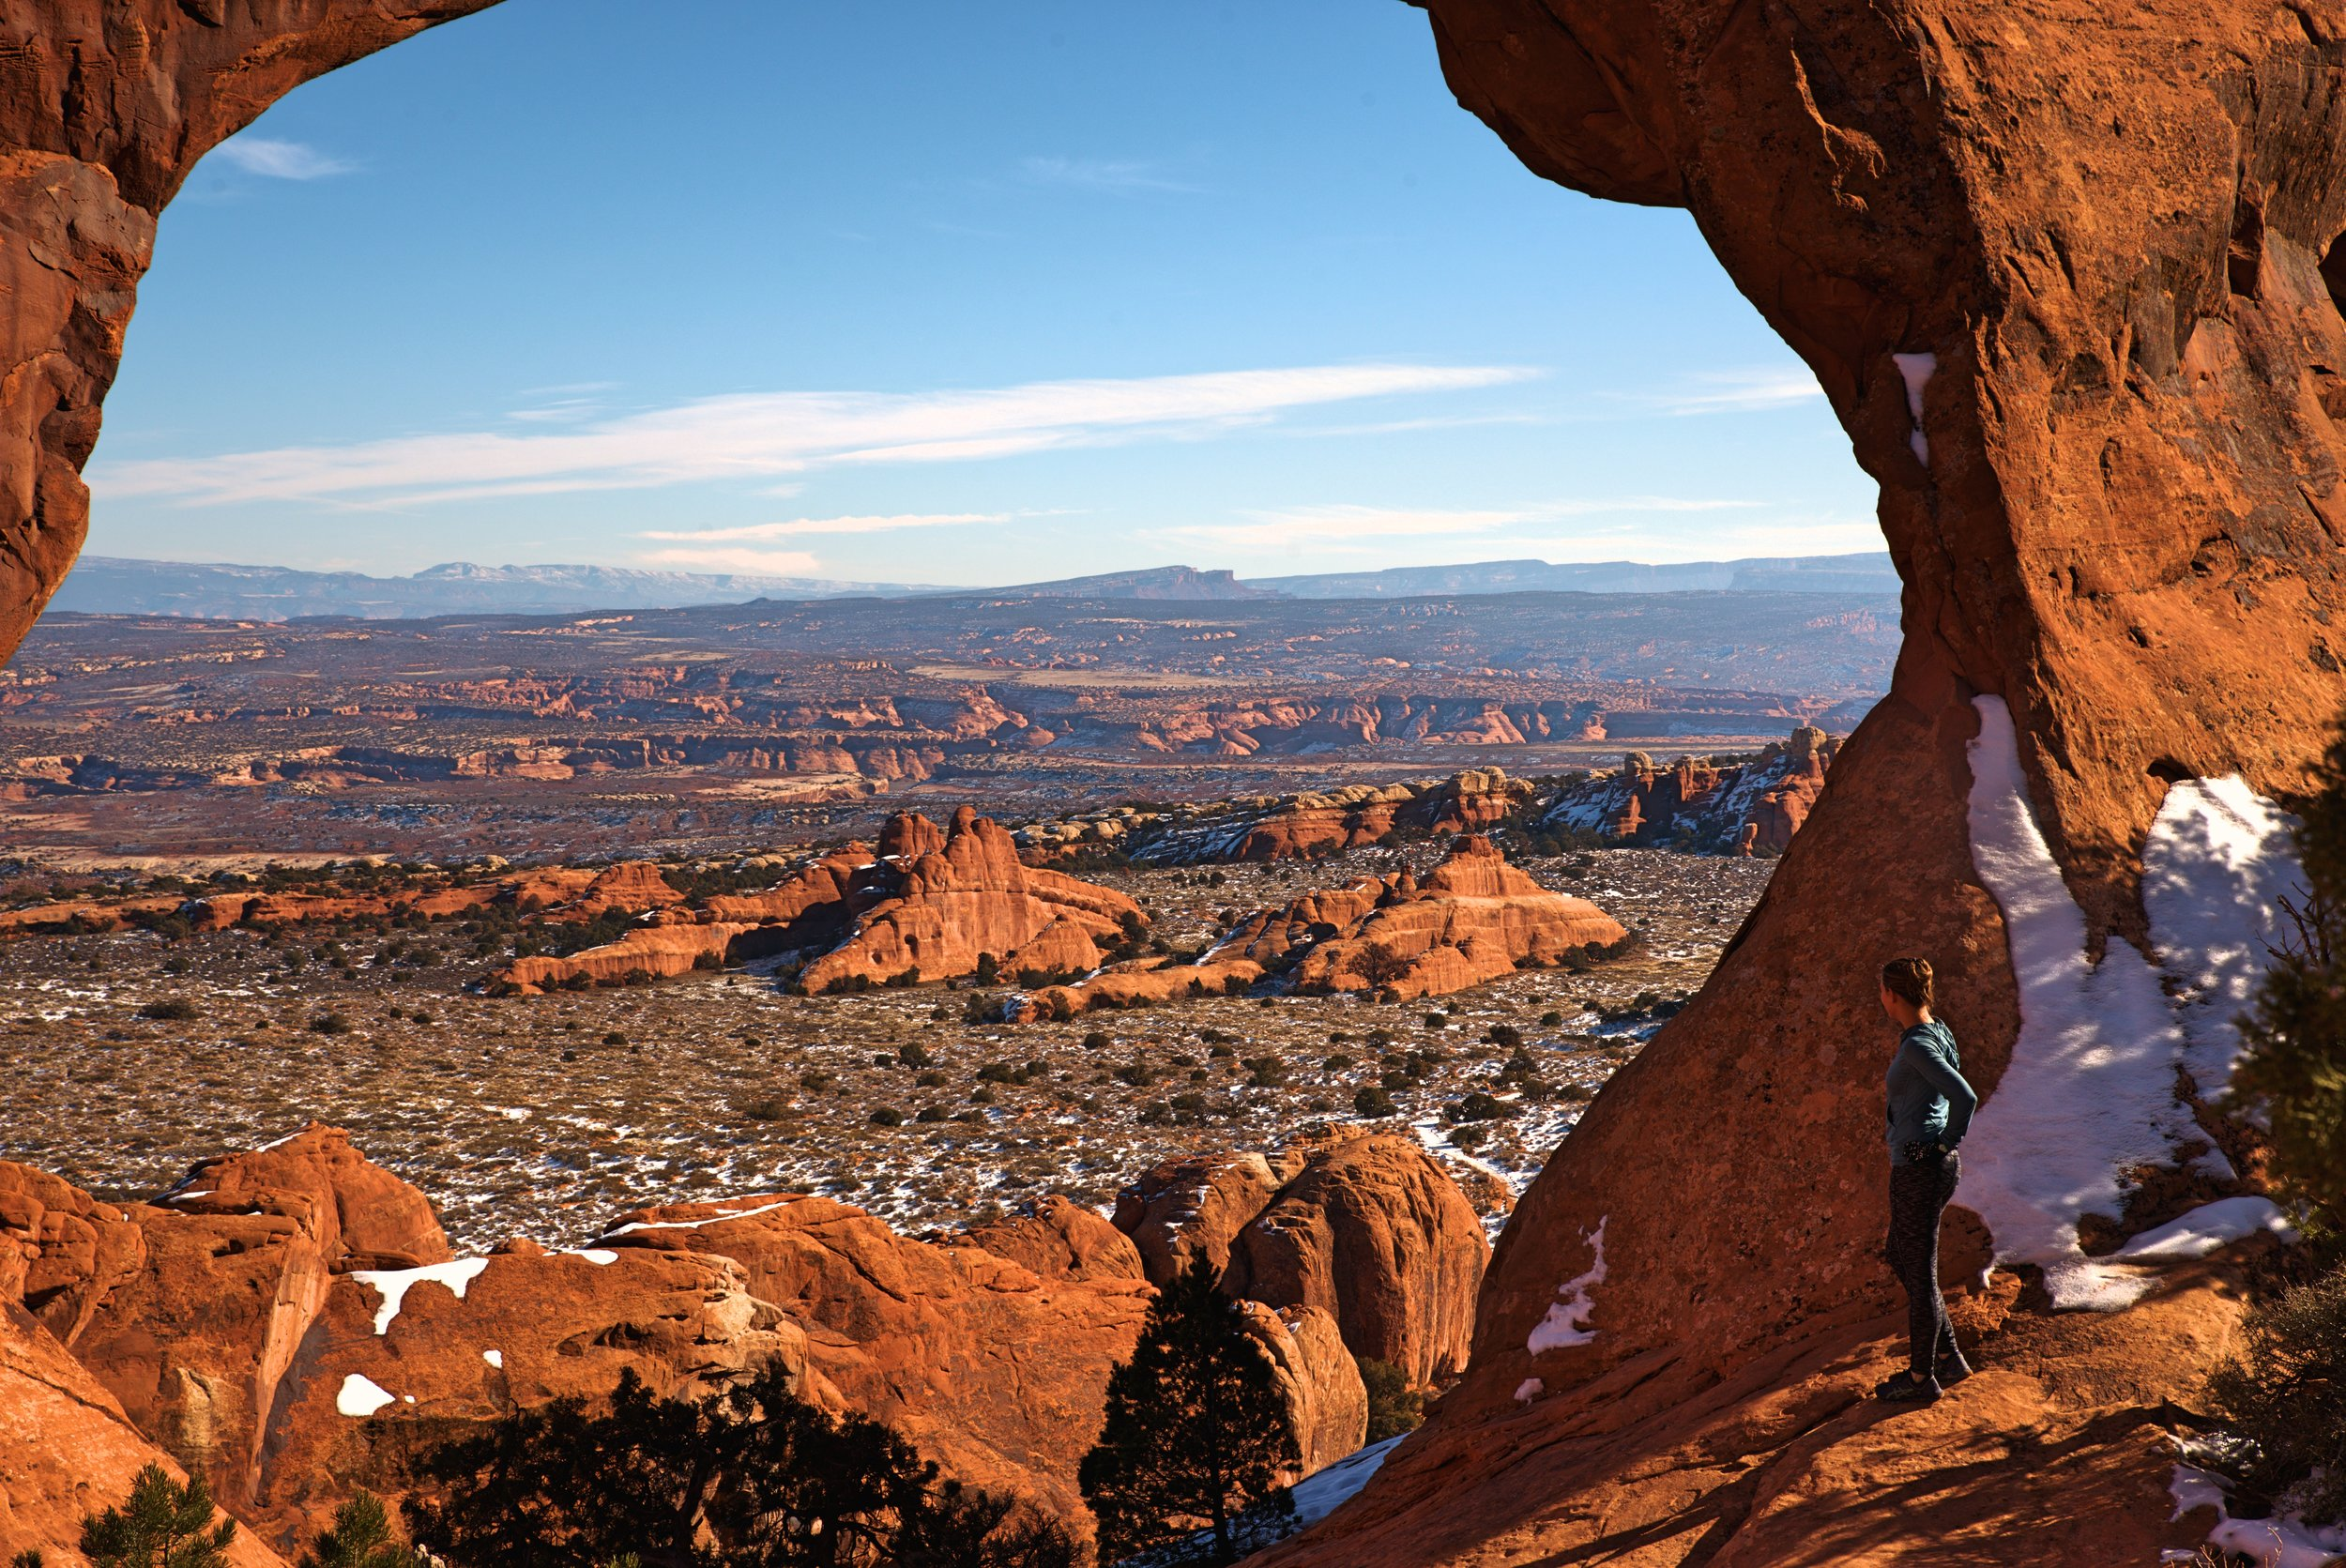 Looking out over the grand vista of Arches National Park framed by Partition Arch.